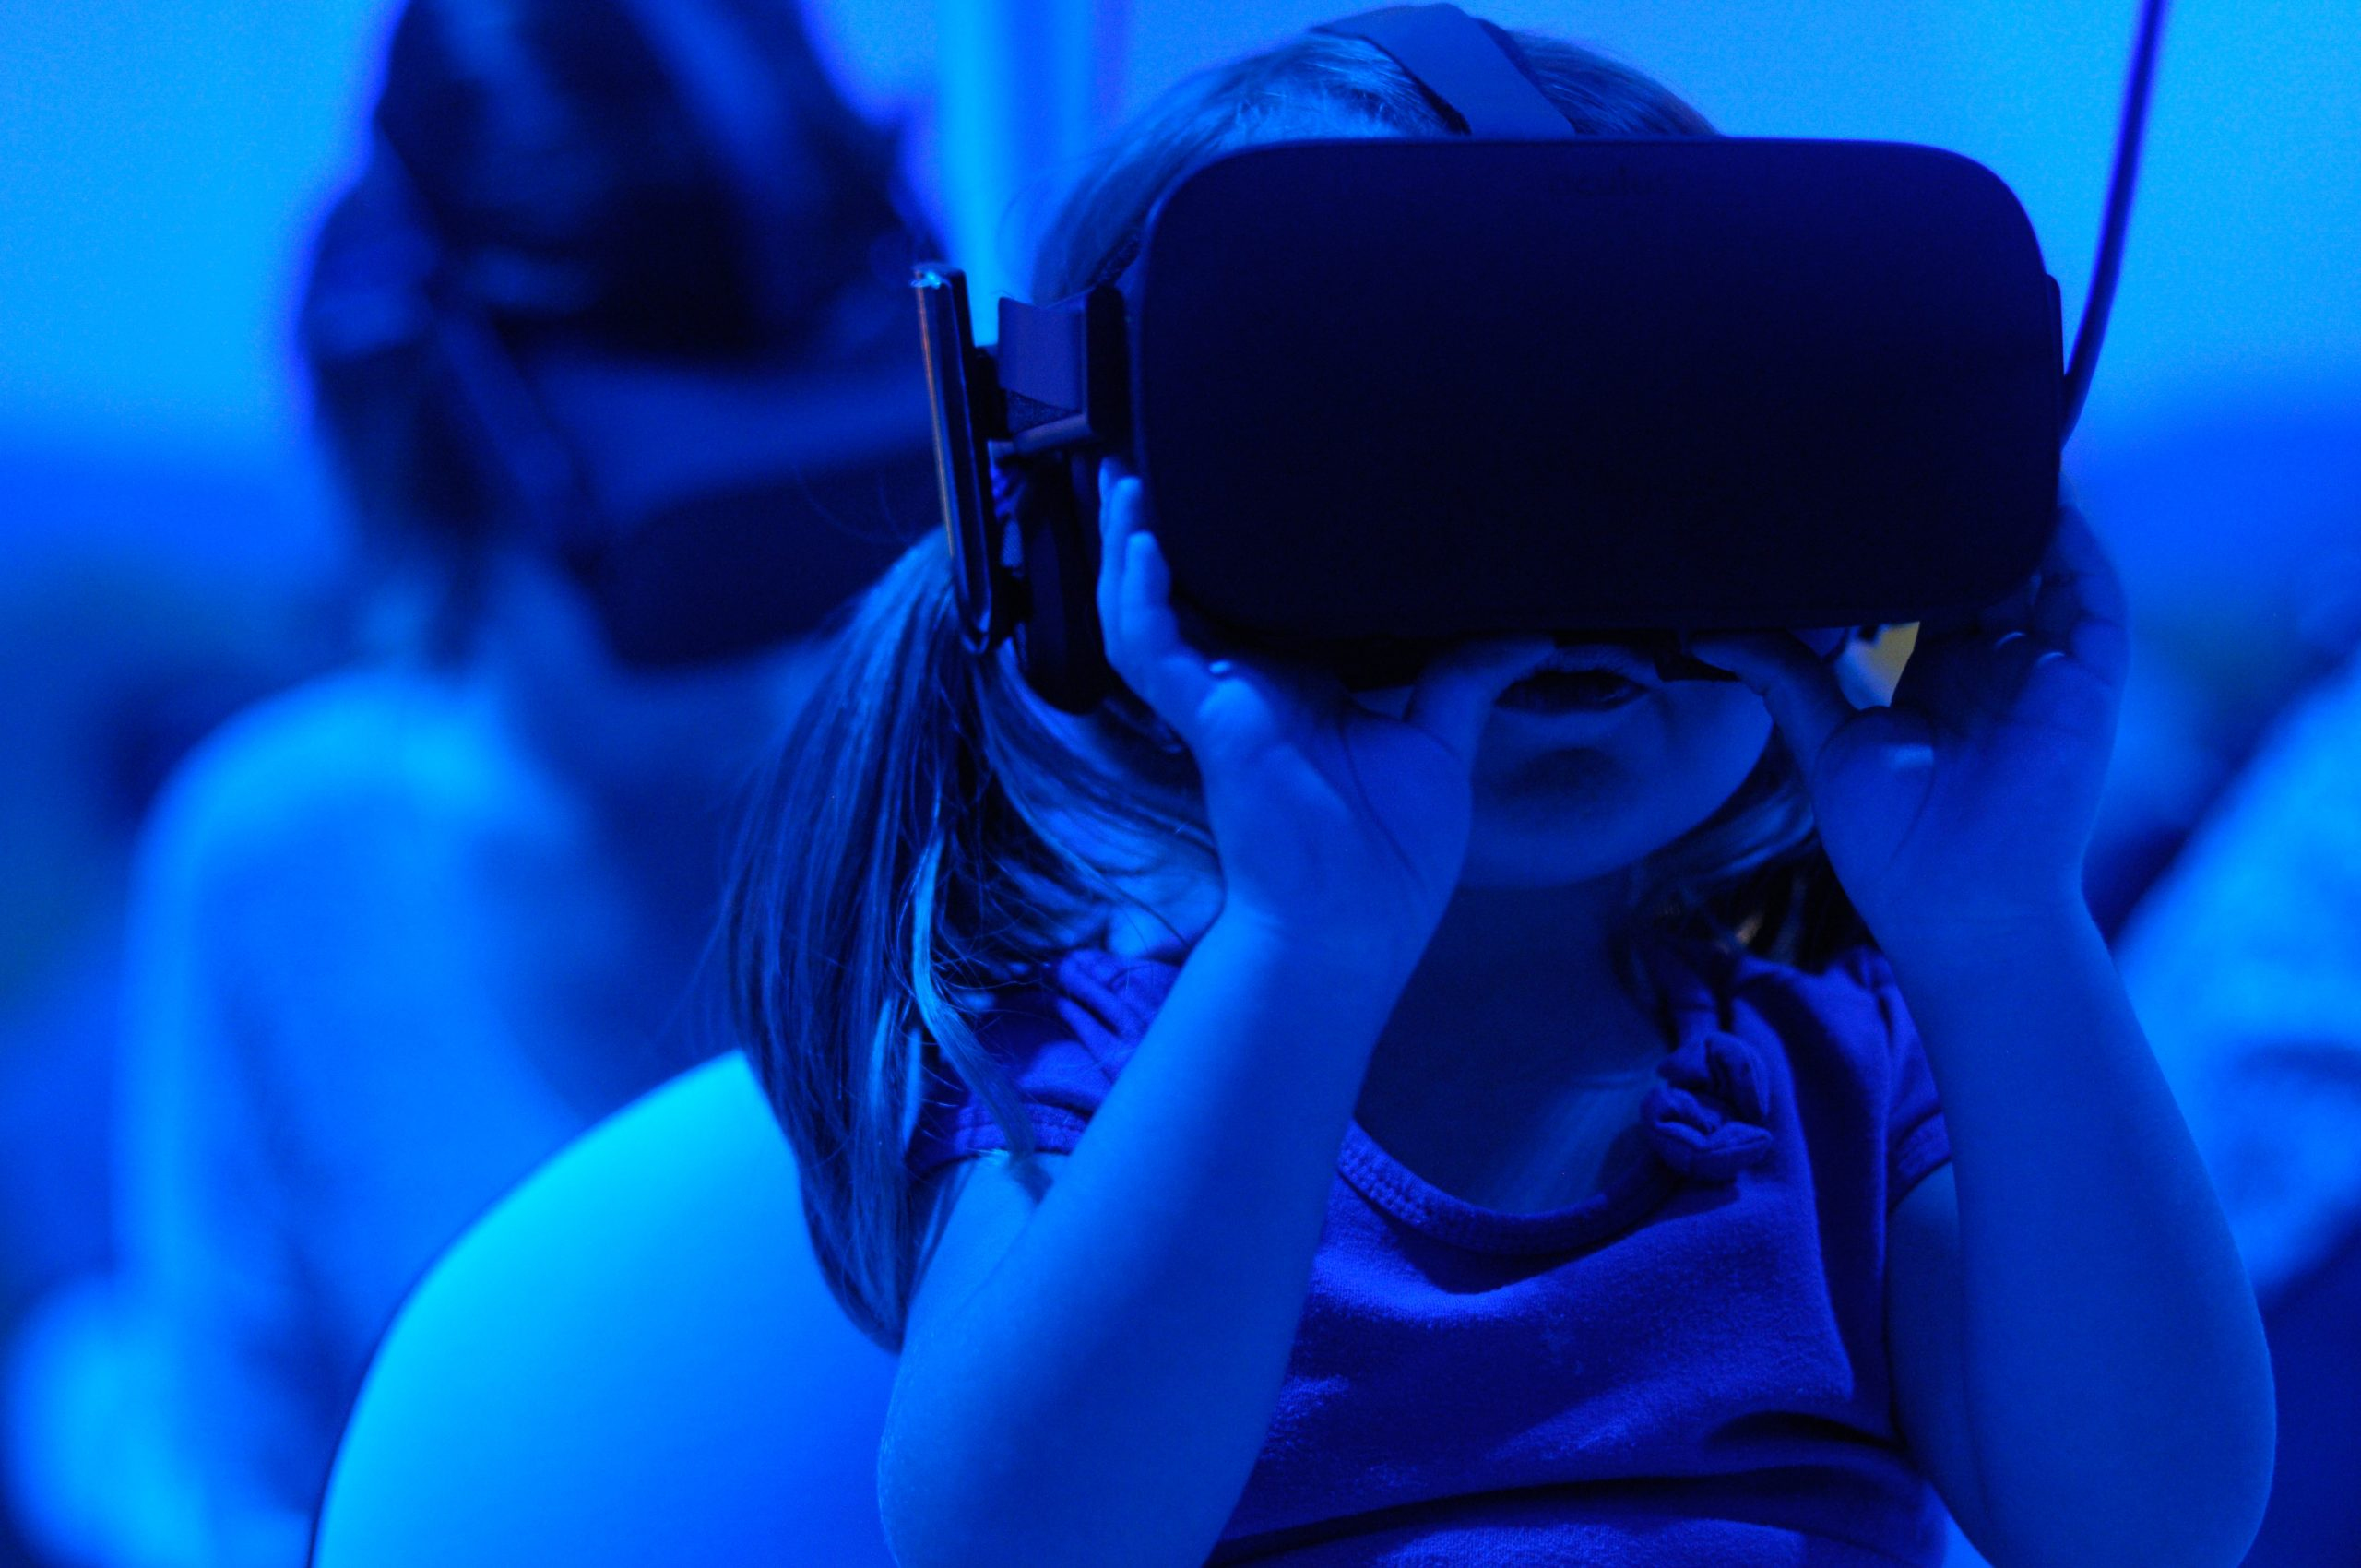 Digitalization and technology: The new educational imperative